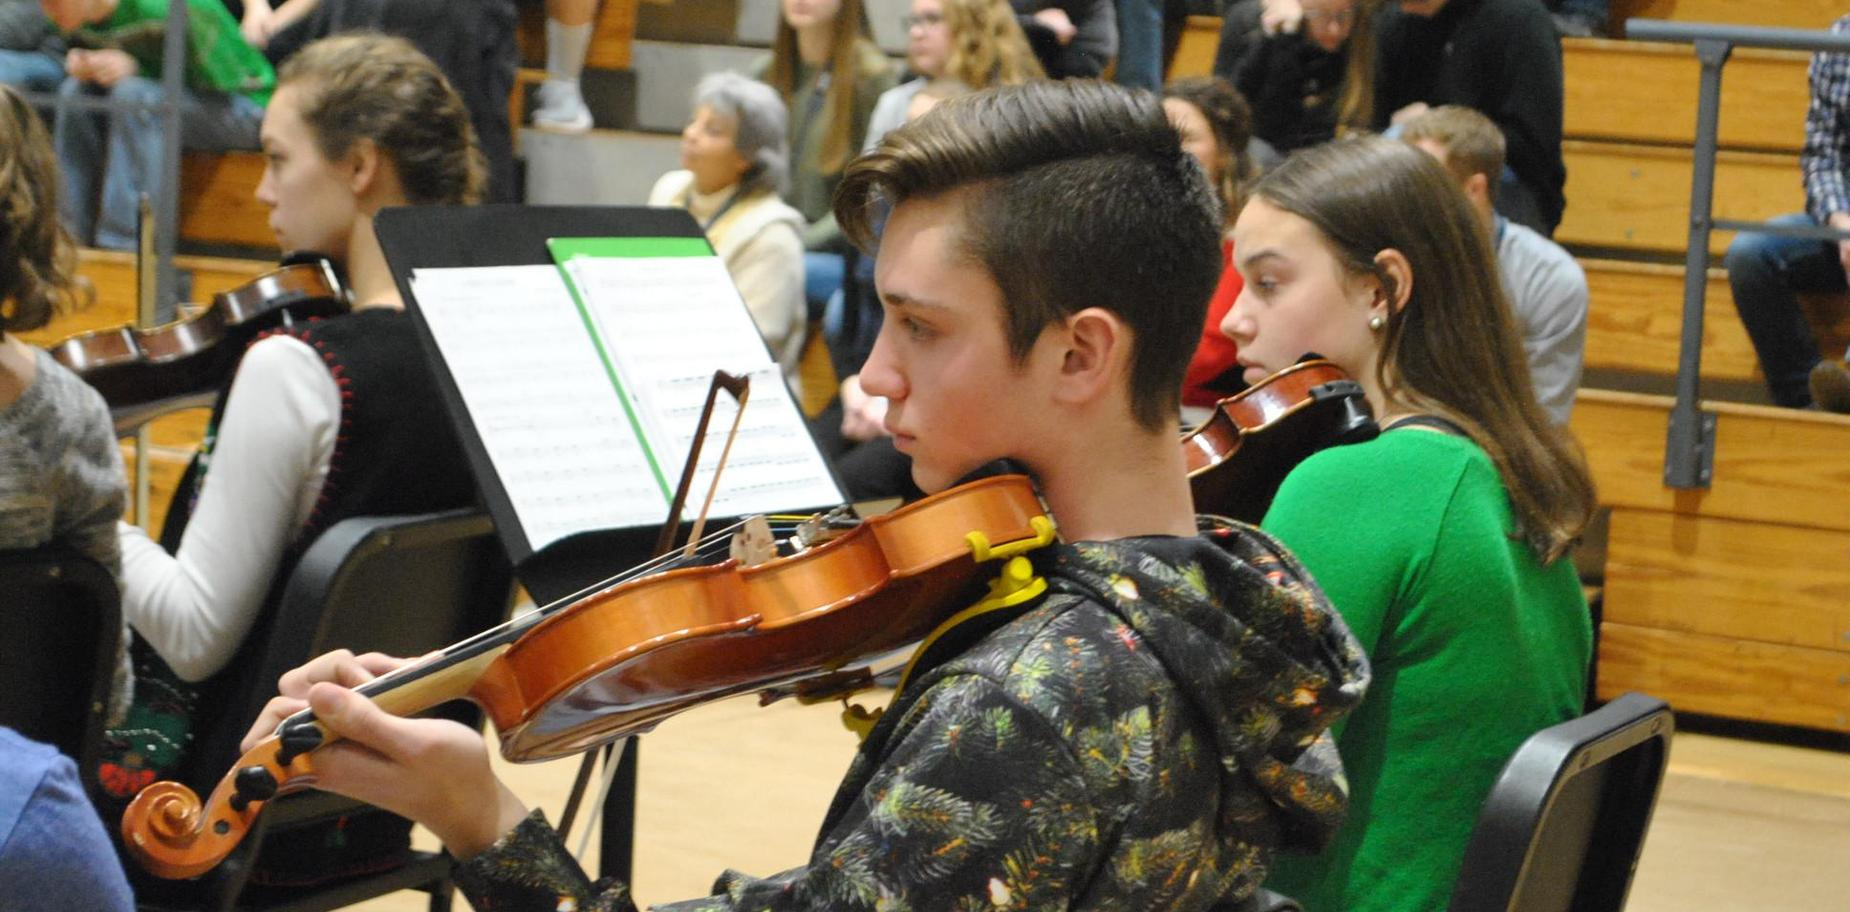 Musical performance at high school